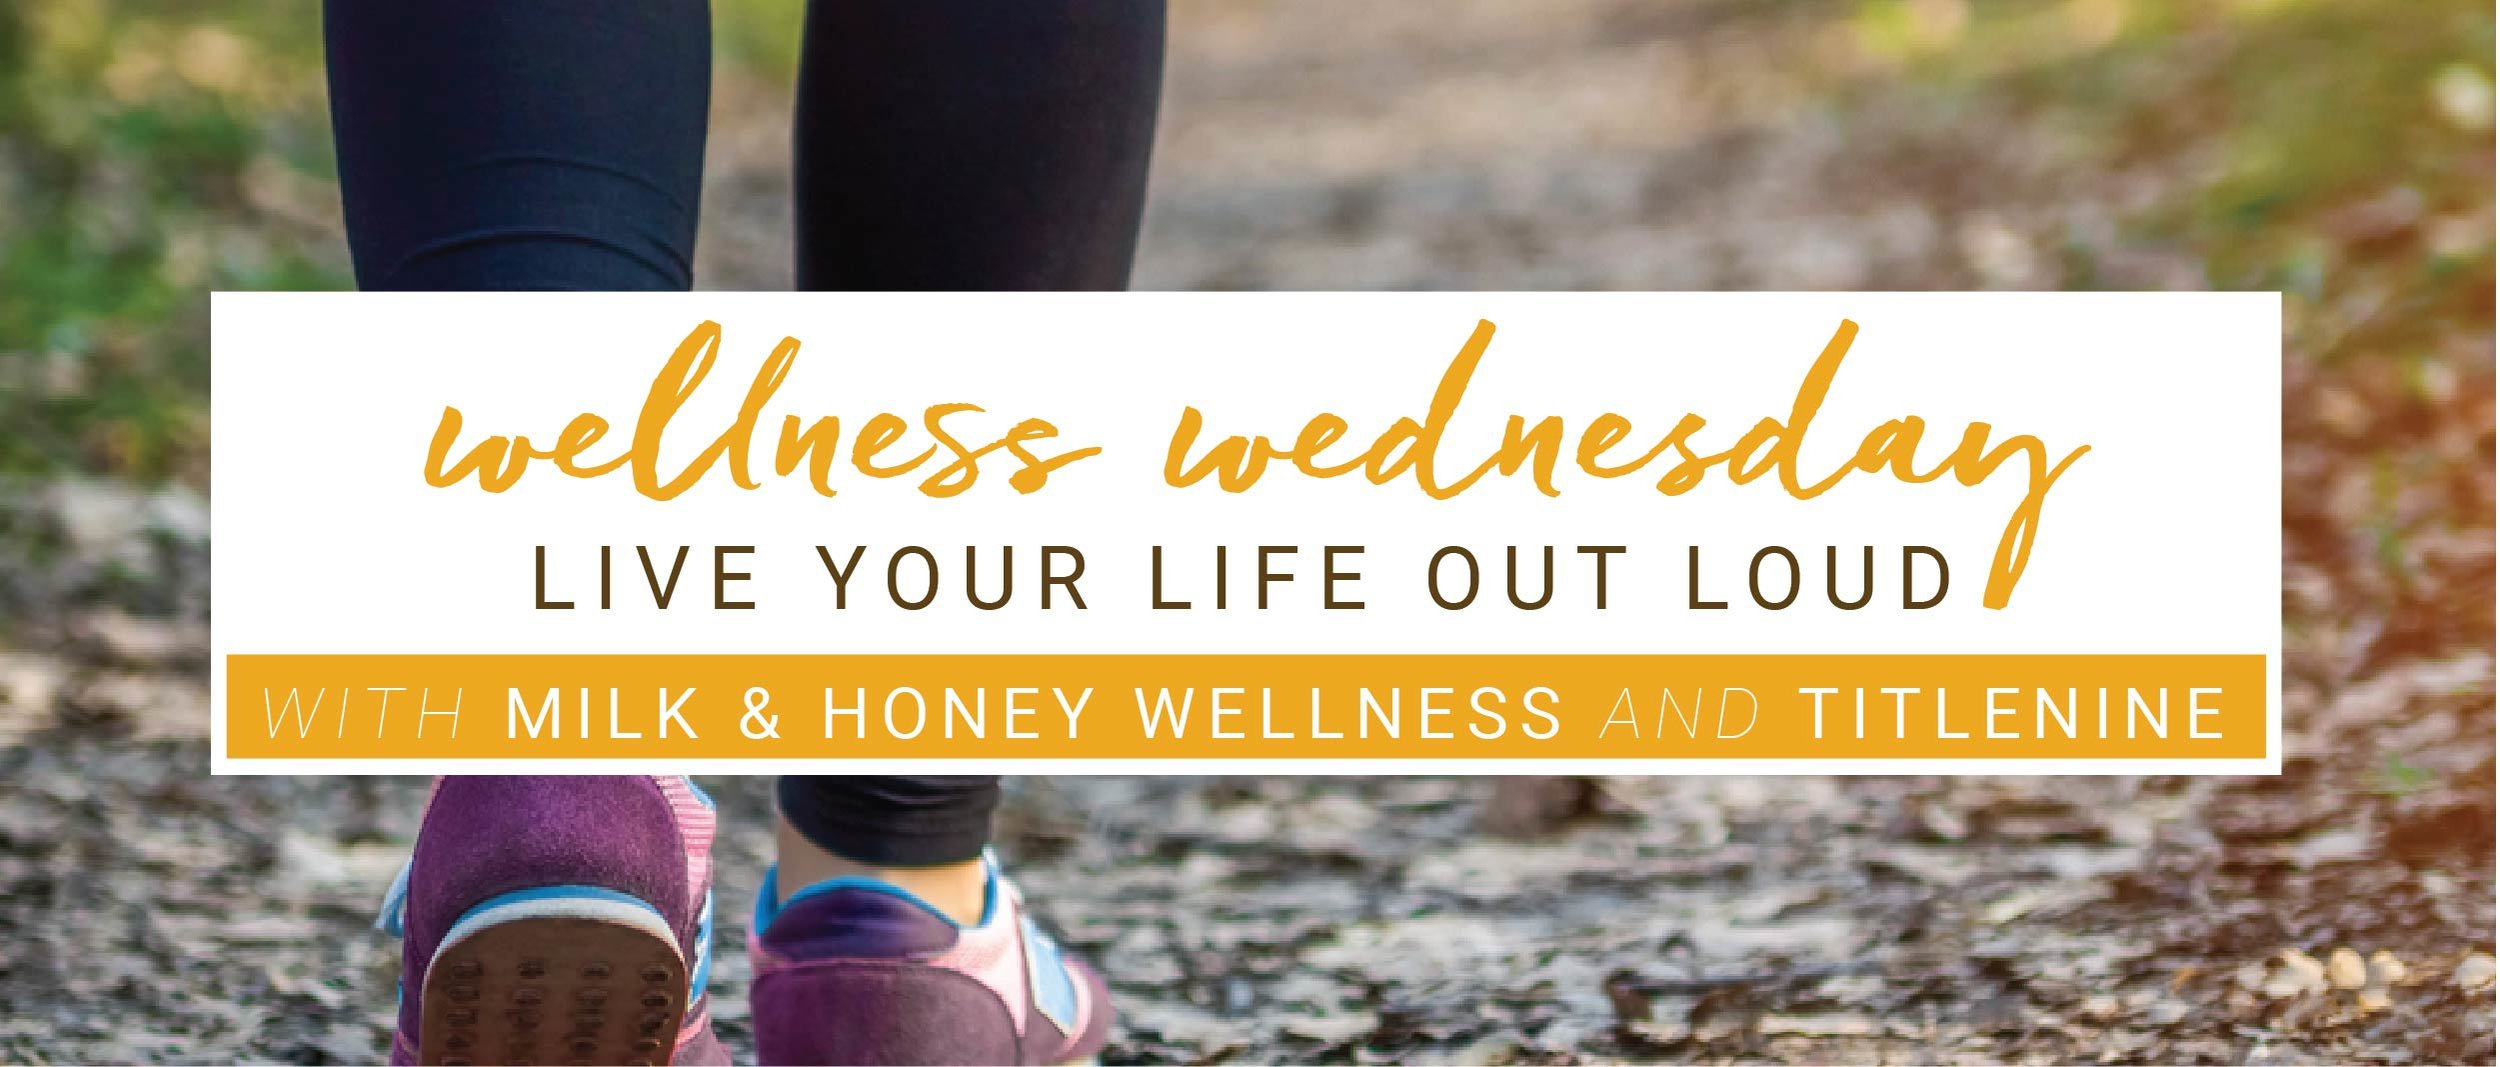 WELLNESS WEDNESDAY - Milk and Honey Wellness and Titlenine have joined forces to bring you the monthly Live Life Out Loud Wellness Series. We are committed to lifestyles that make it possible for women to put their best selves forward. Our goal is to connect and support women to live out loud everyday by encouraging them to go out, be active, and invest themselves.Best of all? It's FREE!